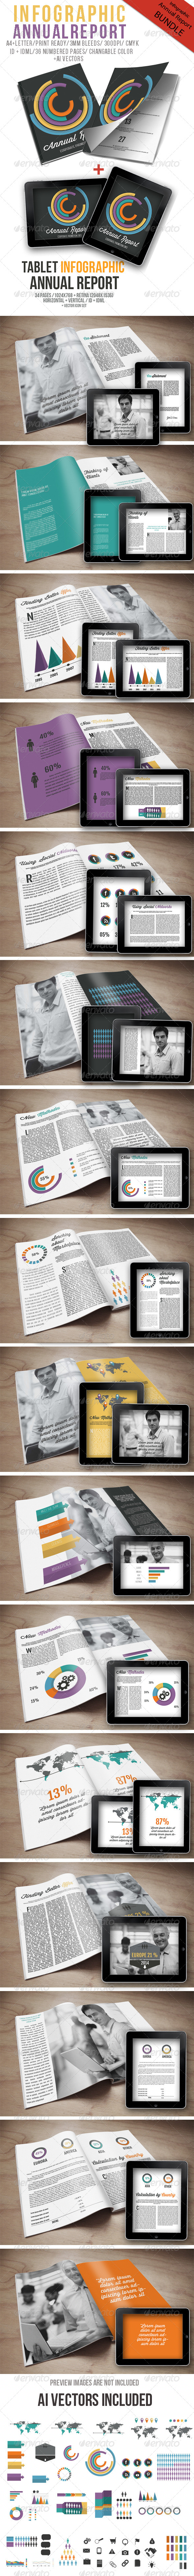 Infographic Annual Report Bundle - Proposals & Invoices Stationery